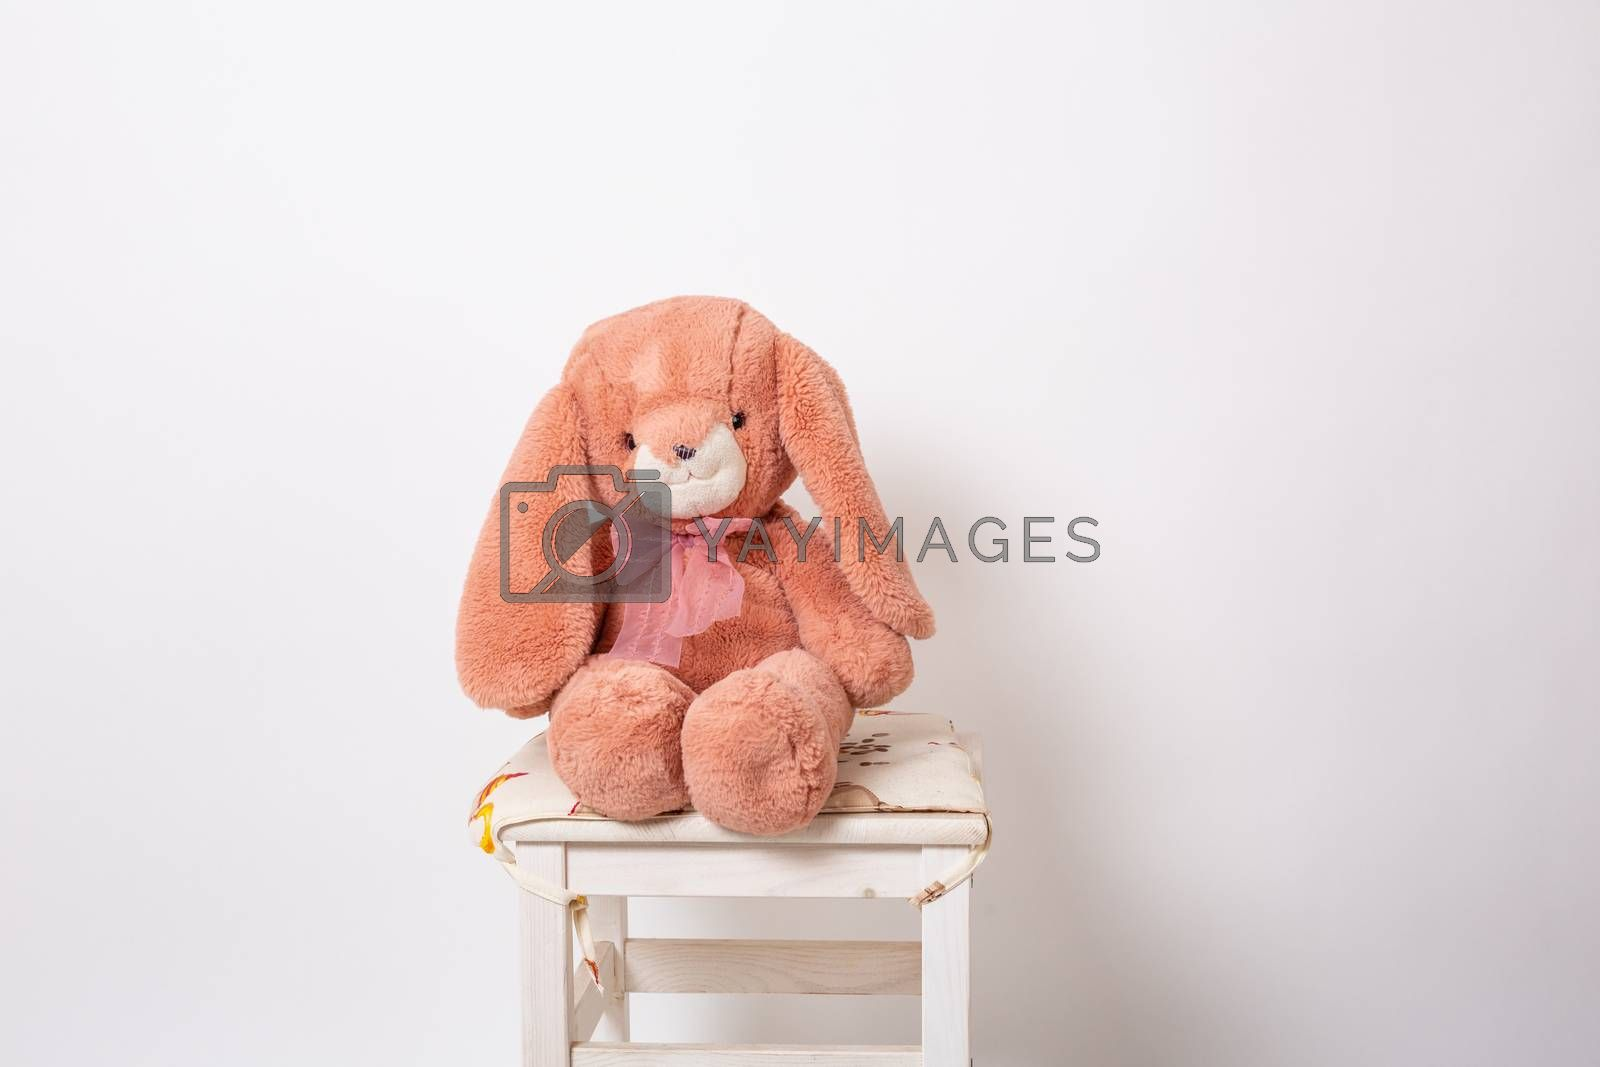 Pink rabbit plush doll sitting on a stool on white background. Easter Bunny. Easter Hare. by Vassiliy